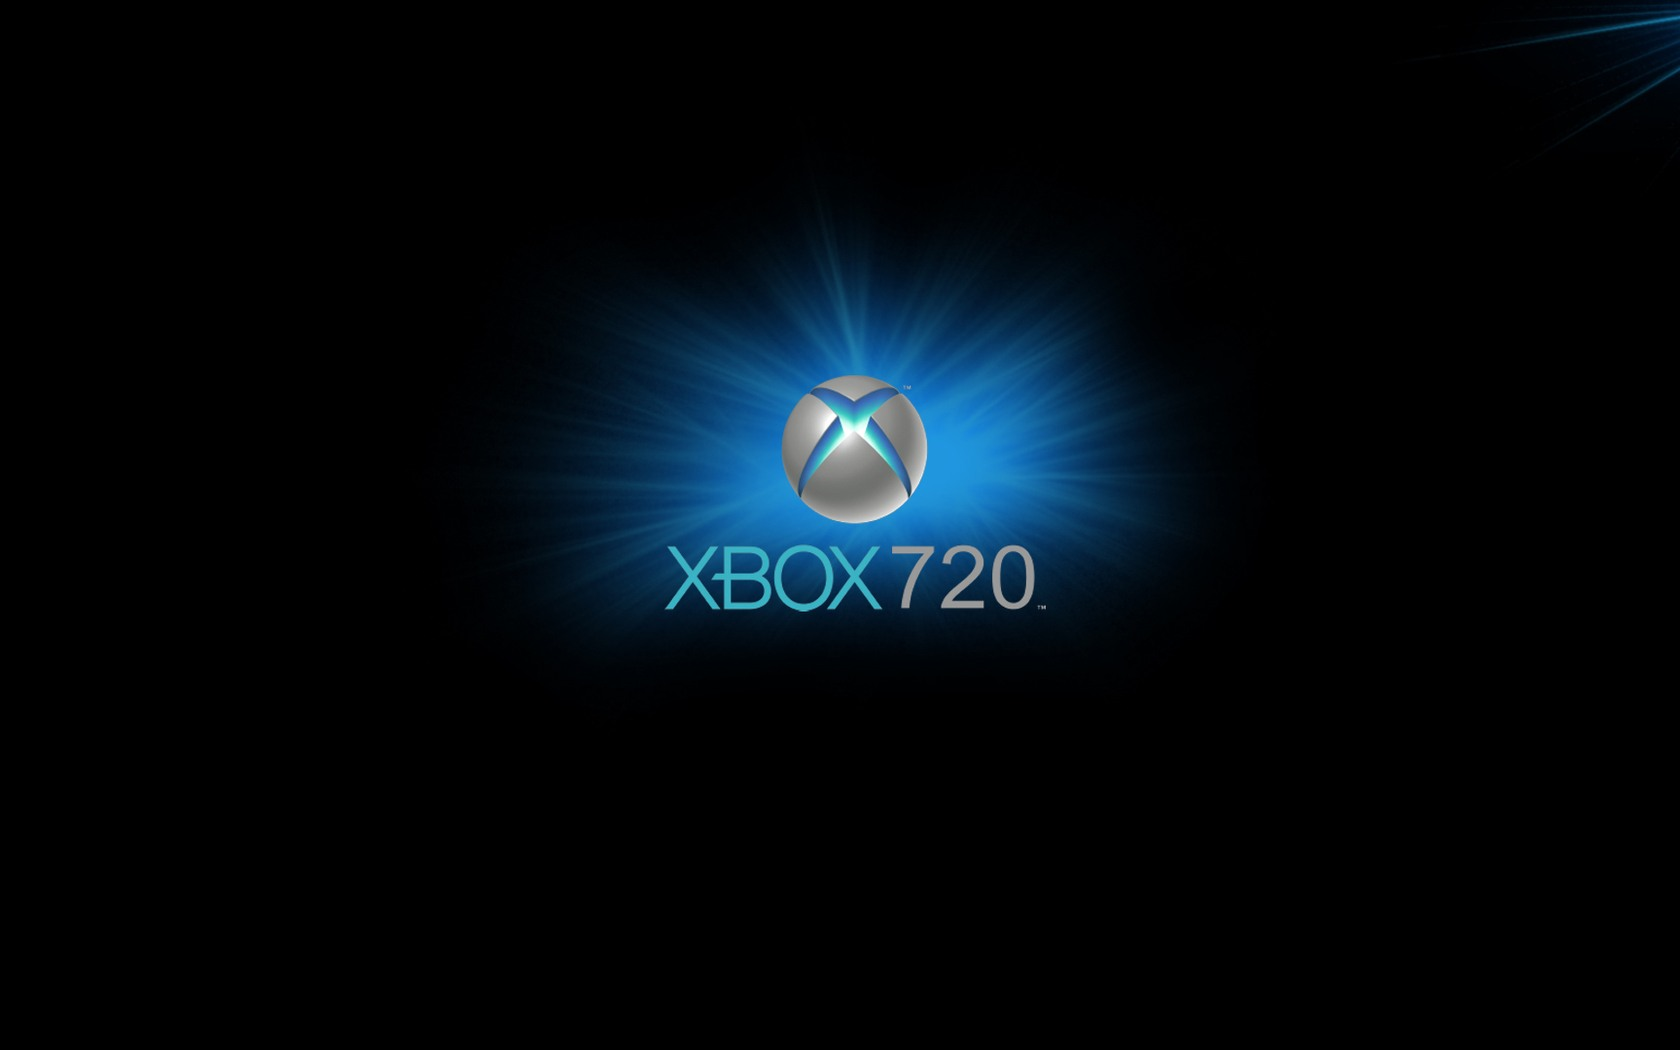 xbox_720_wallpaper_logo